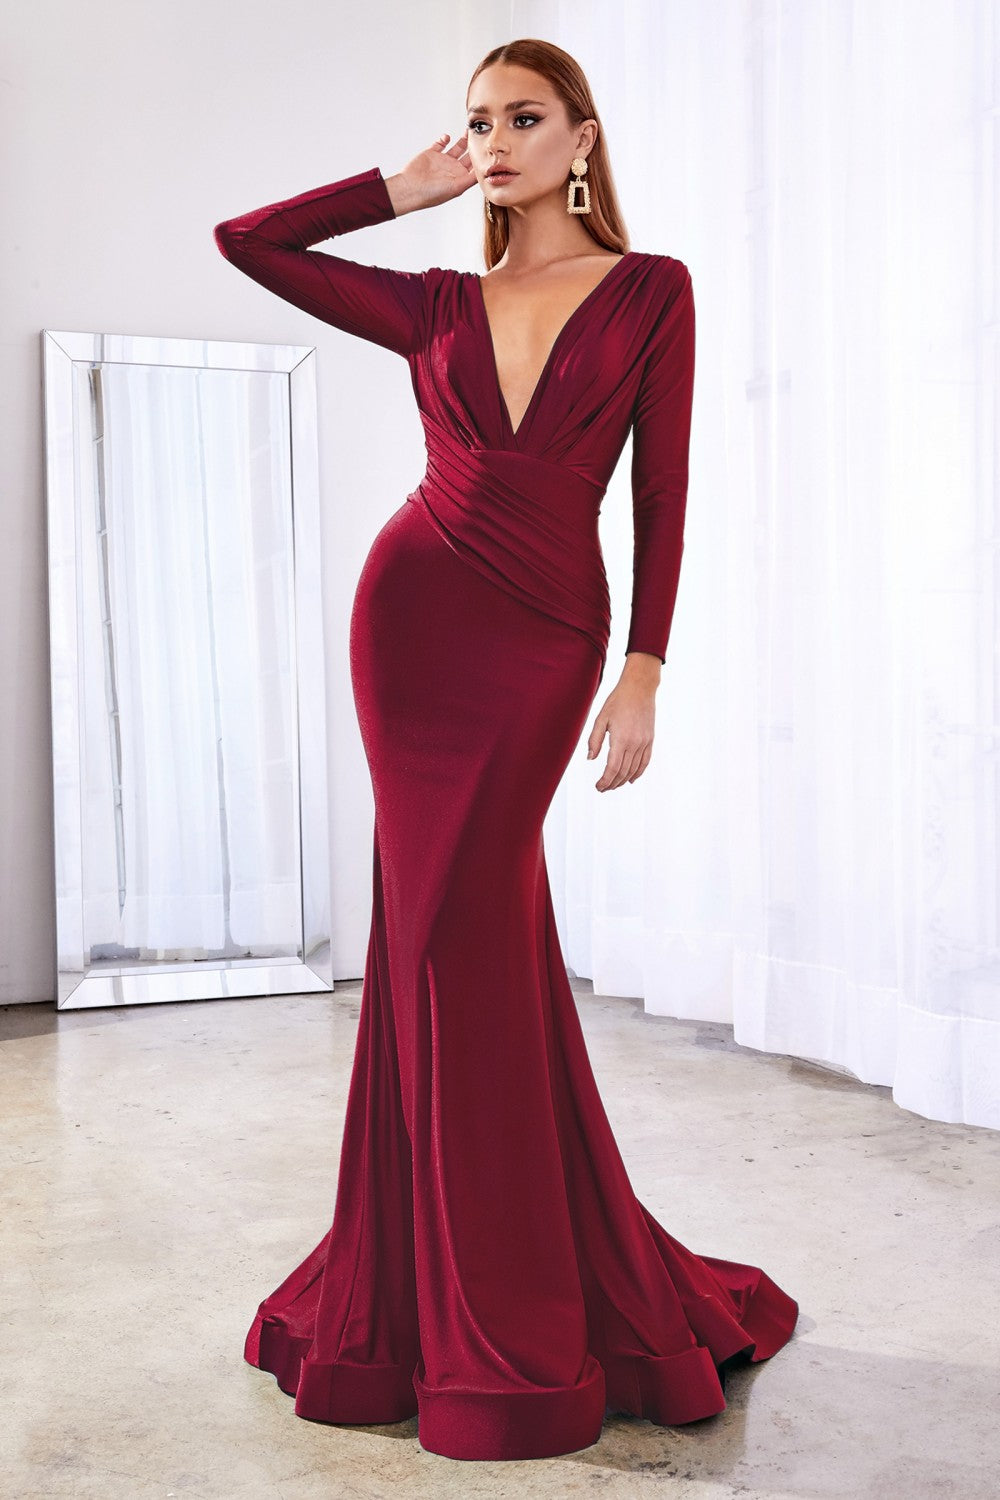 Hayley Long Sleeve Sexy Fitted Gown Bridesmaid Dress C168AR-Burgundy